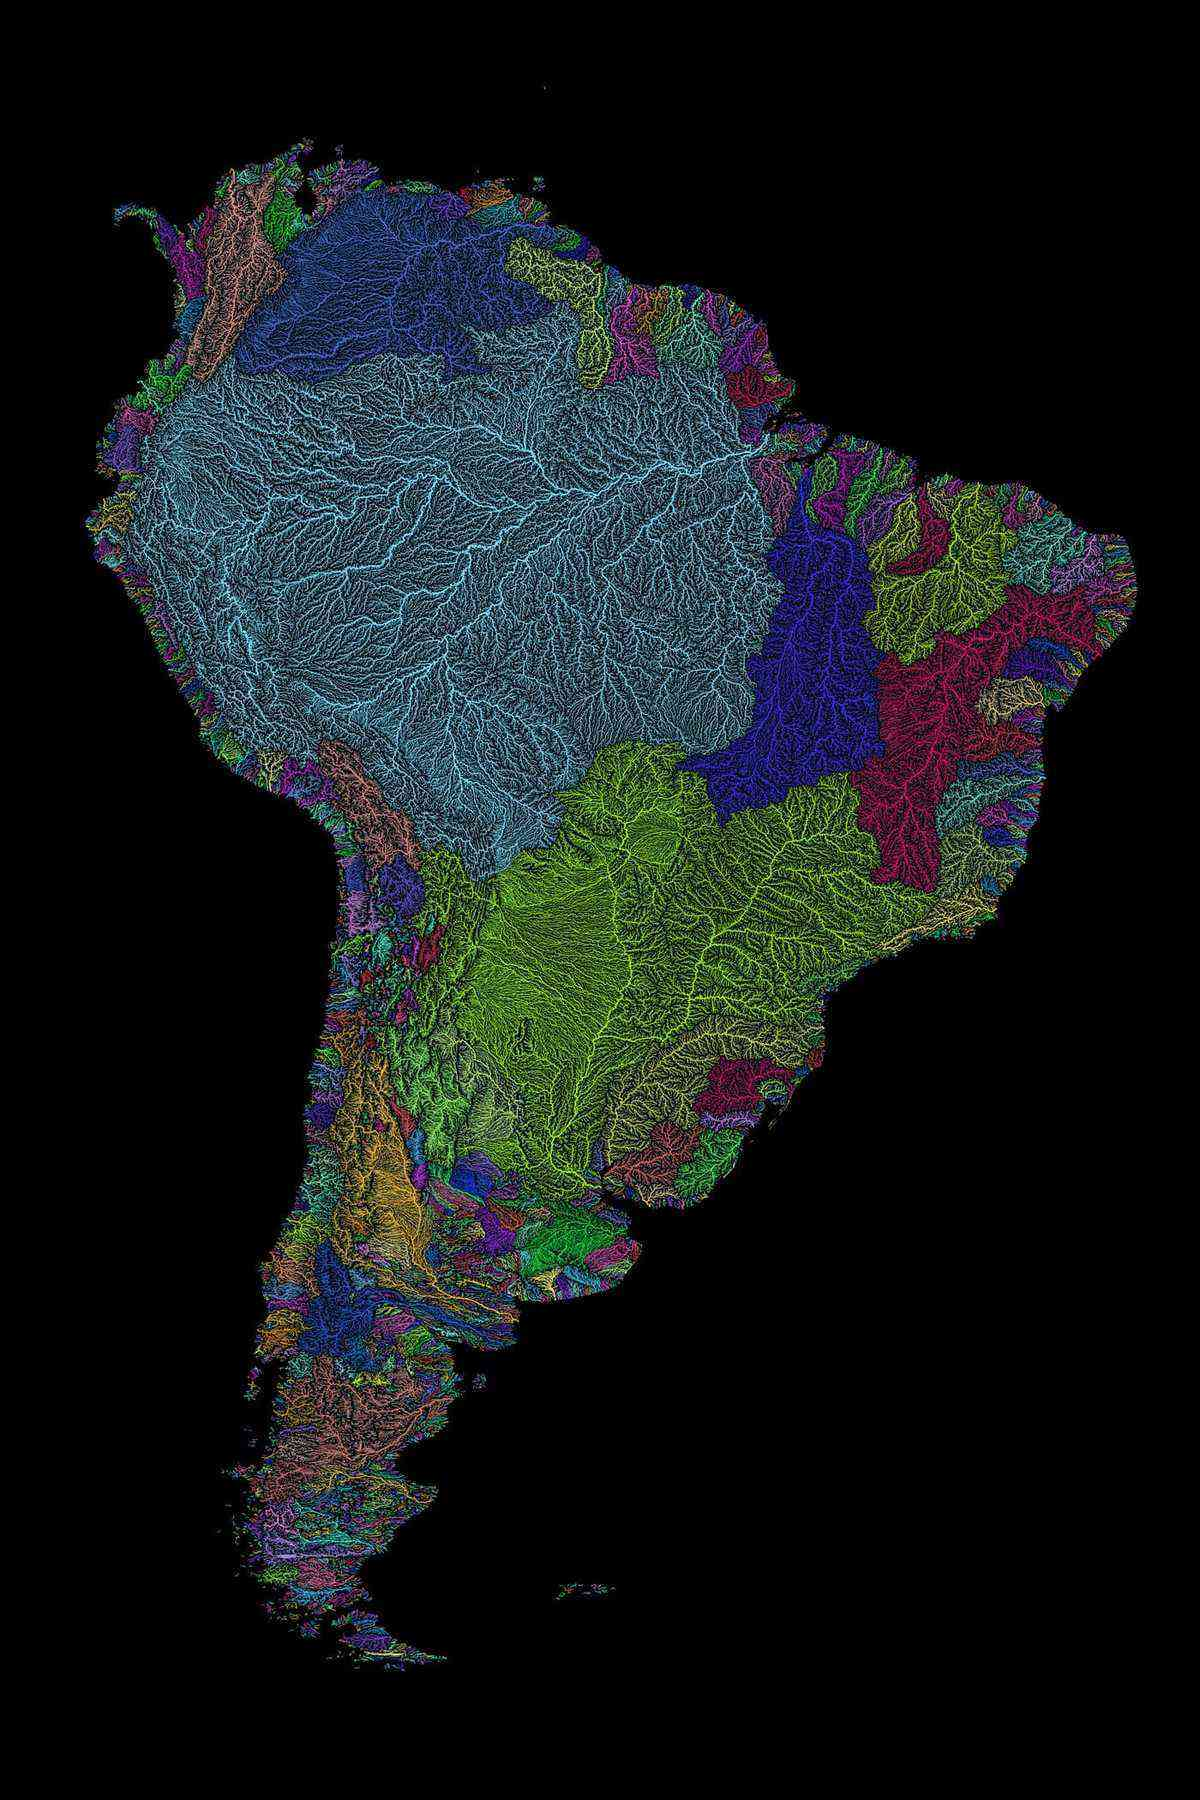 South_America_Rivers_Black_Catchments_Etsy2